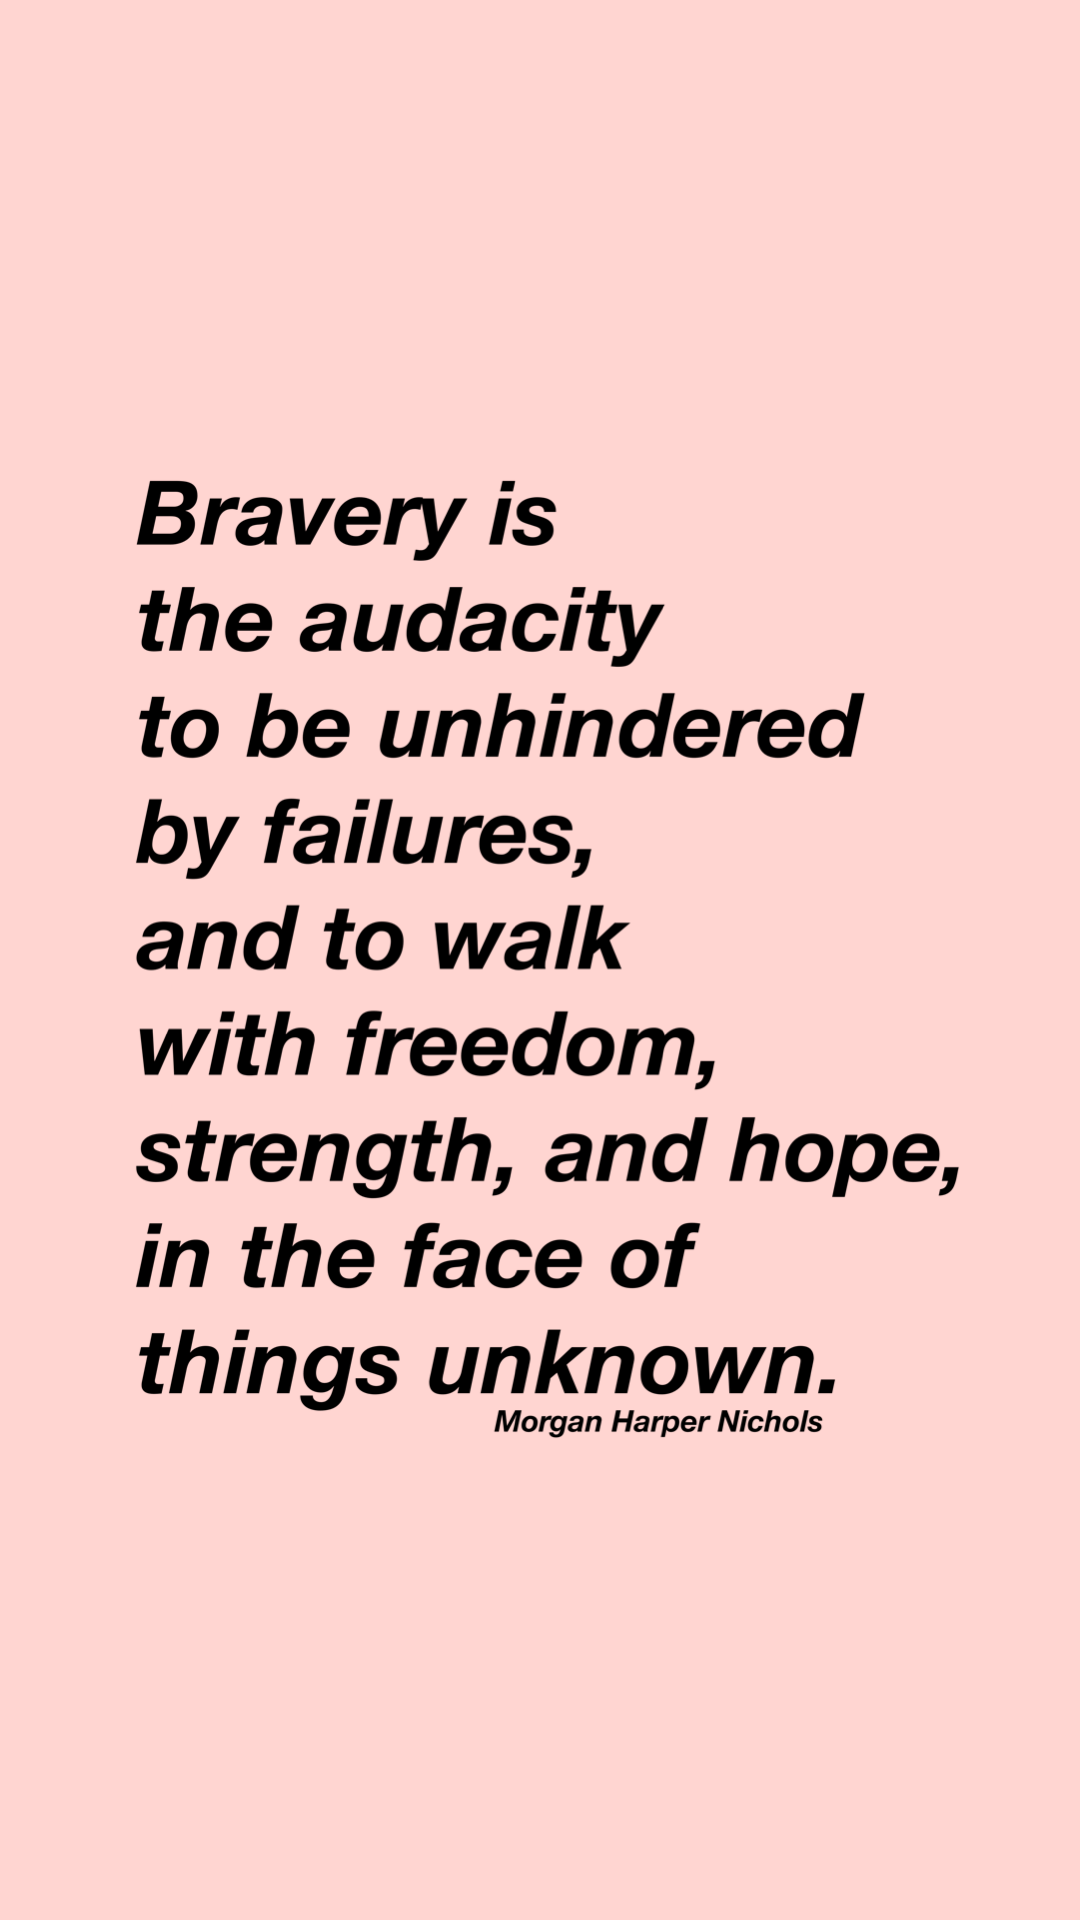 Bravery quotes - quotes about being brave for women, quotes about strength, freedom, hope, Morgan Harper Nichols quote definition